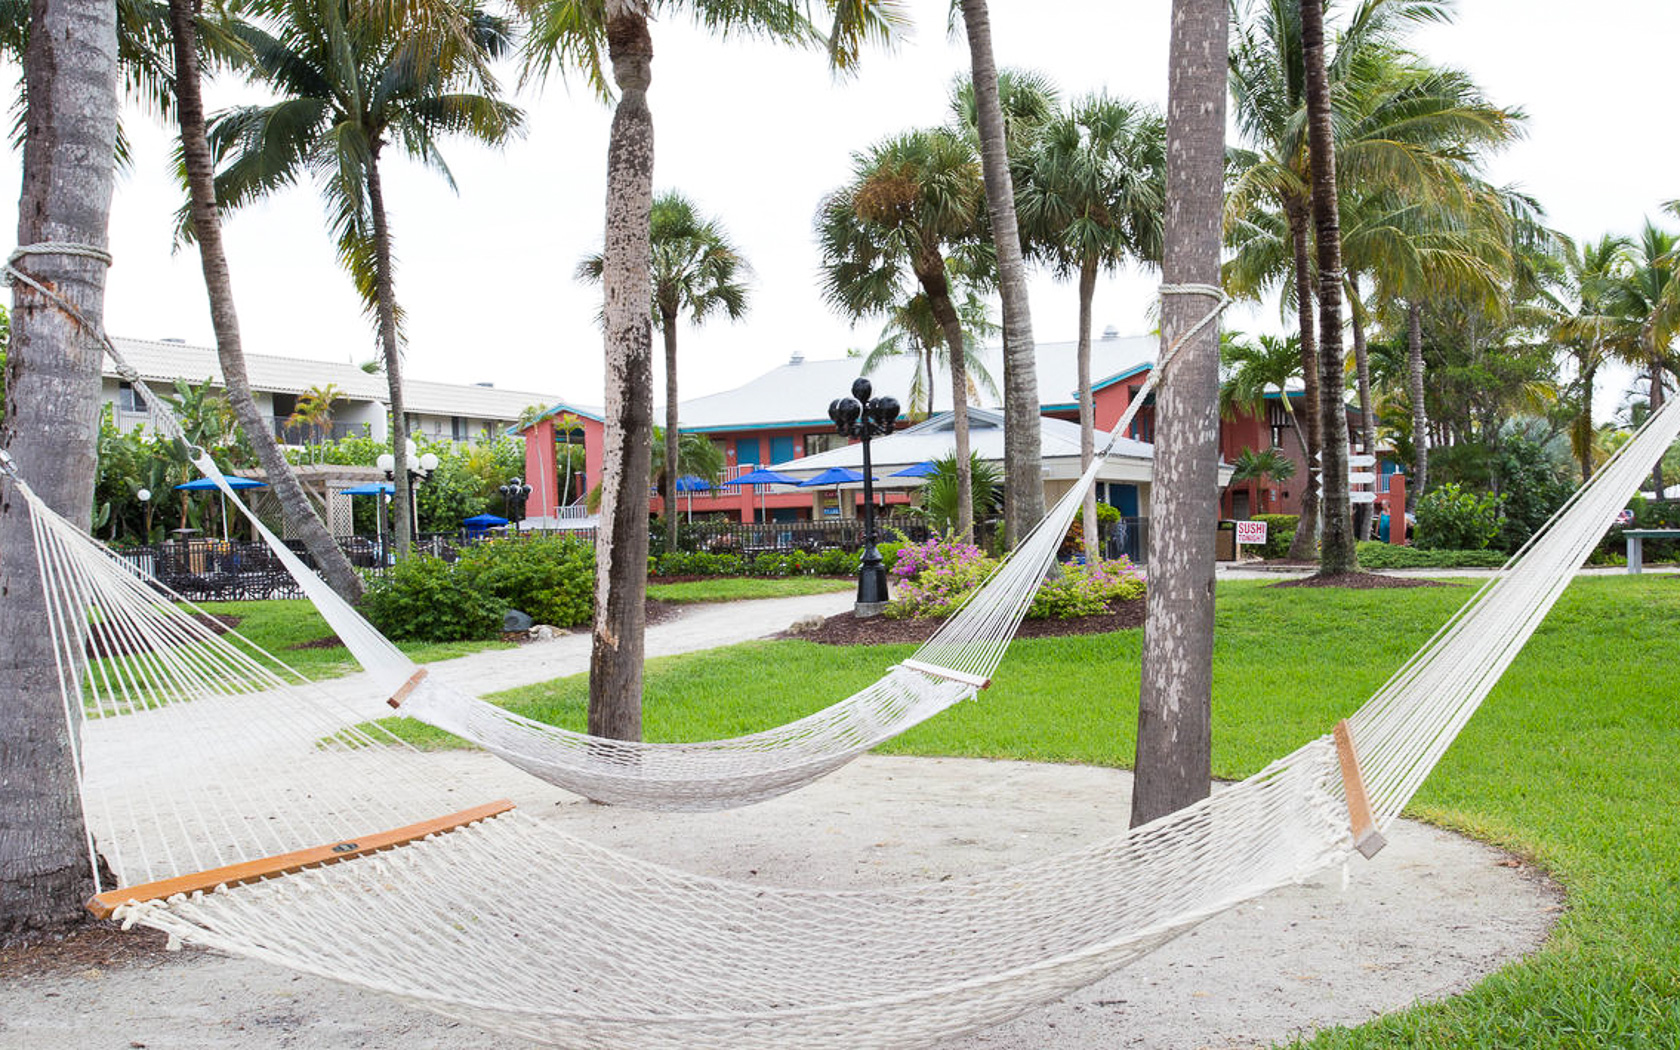 Hammocks hanging on palm trees next to property